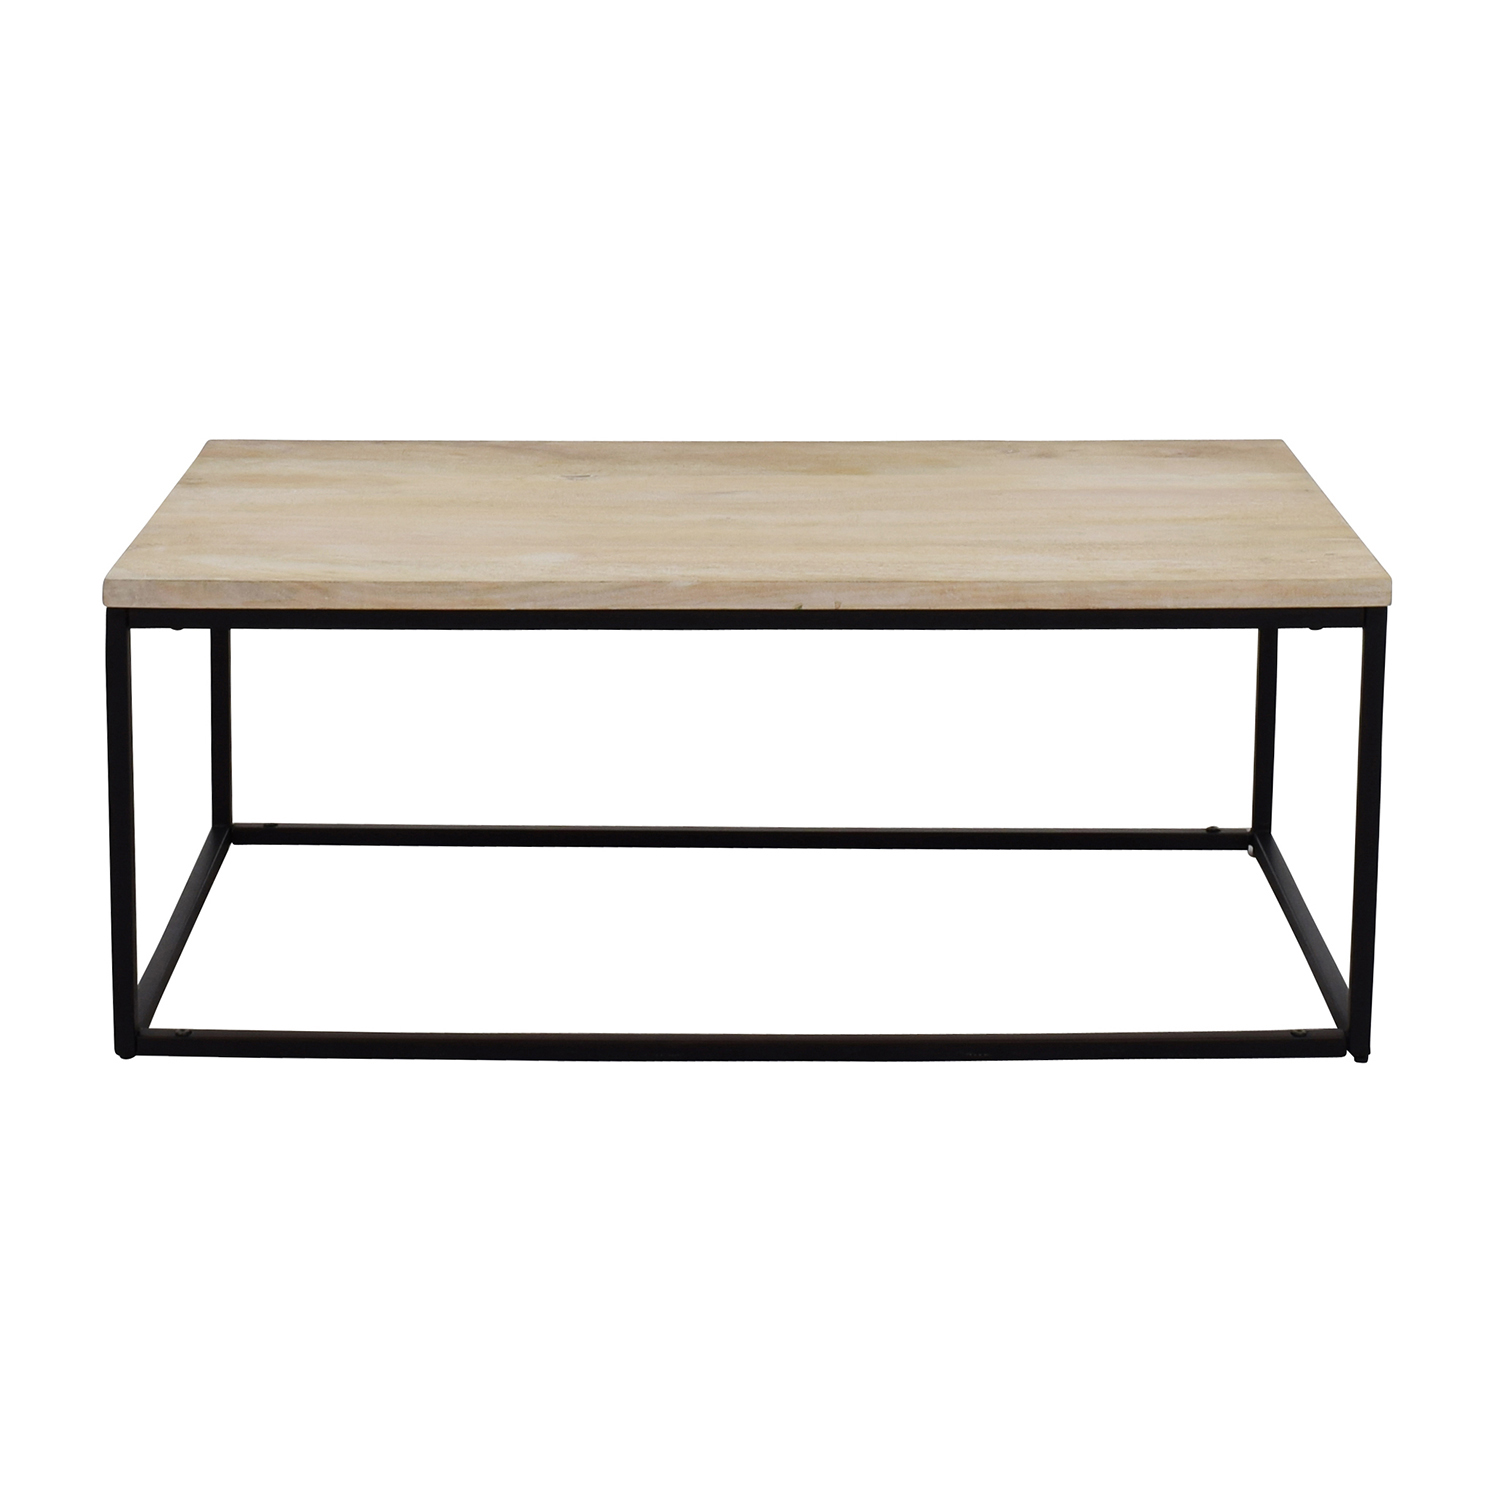 54% OFF Rustic Coffee Table With Cutouts Tables